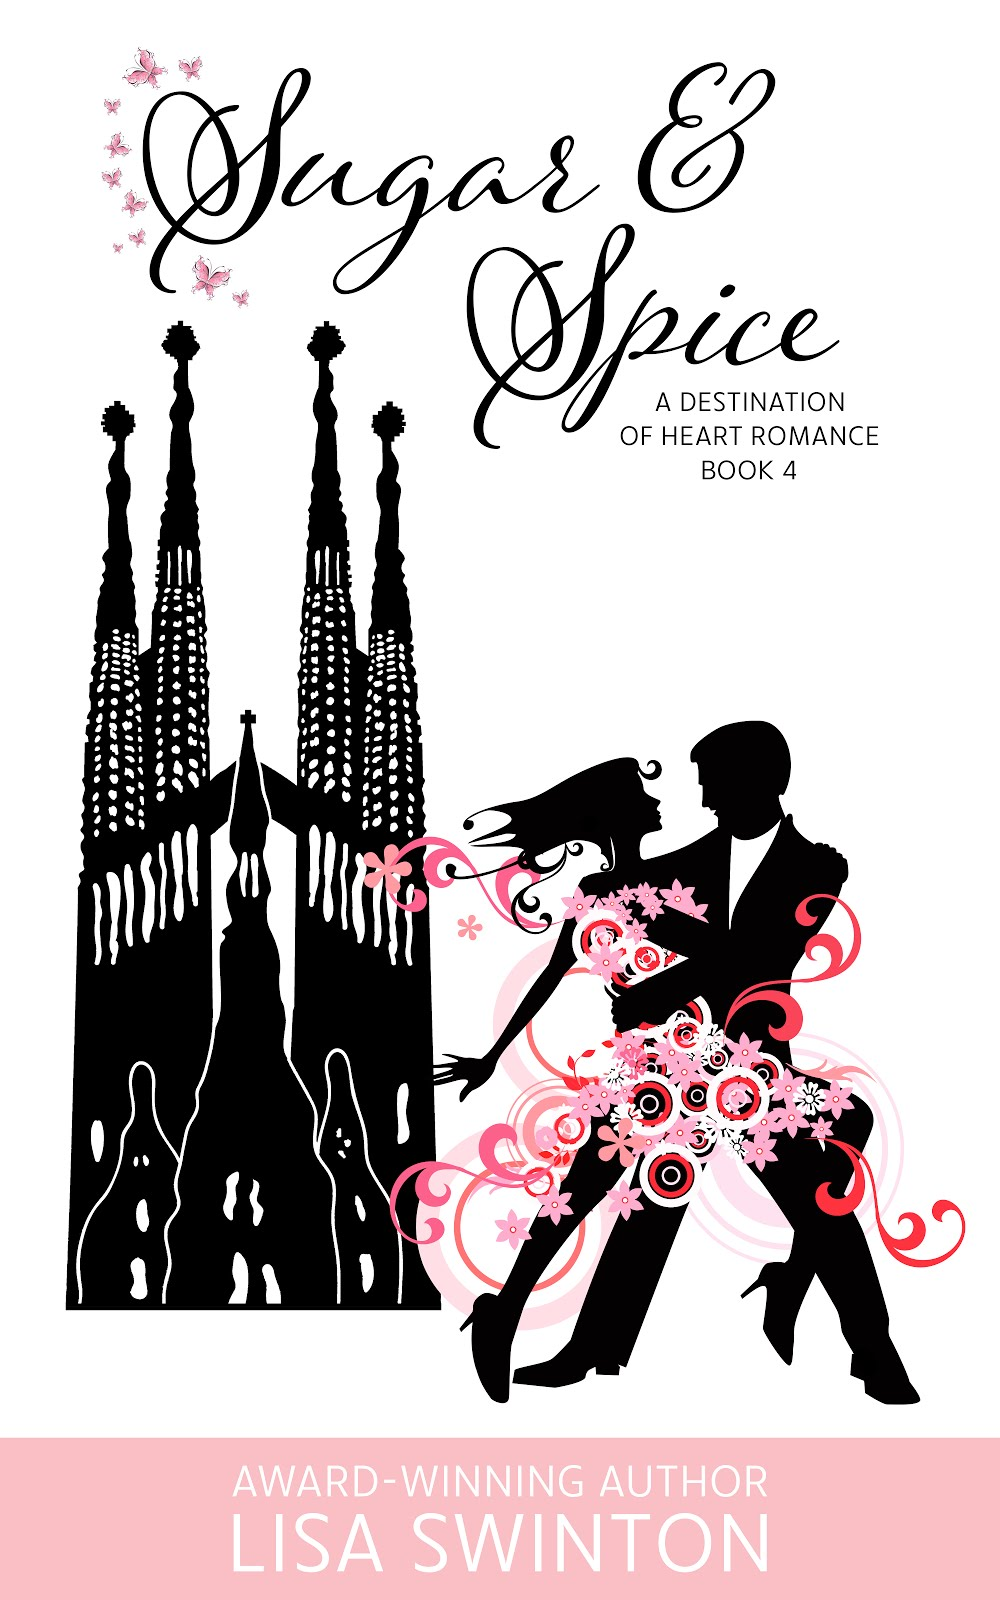 Purchase Sugar & Spice (A Destination of Heart Romance Book 4)